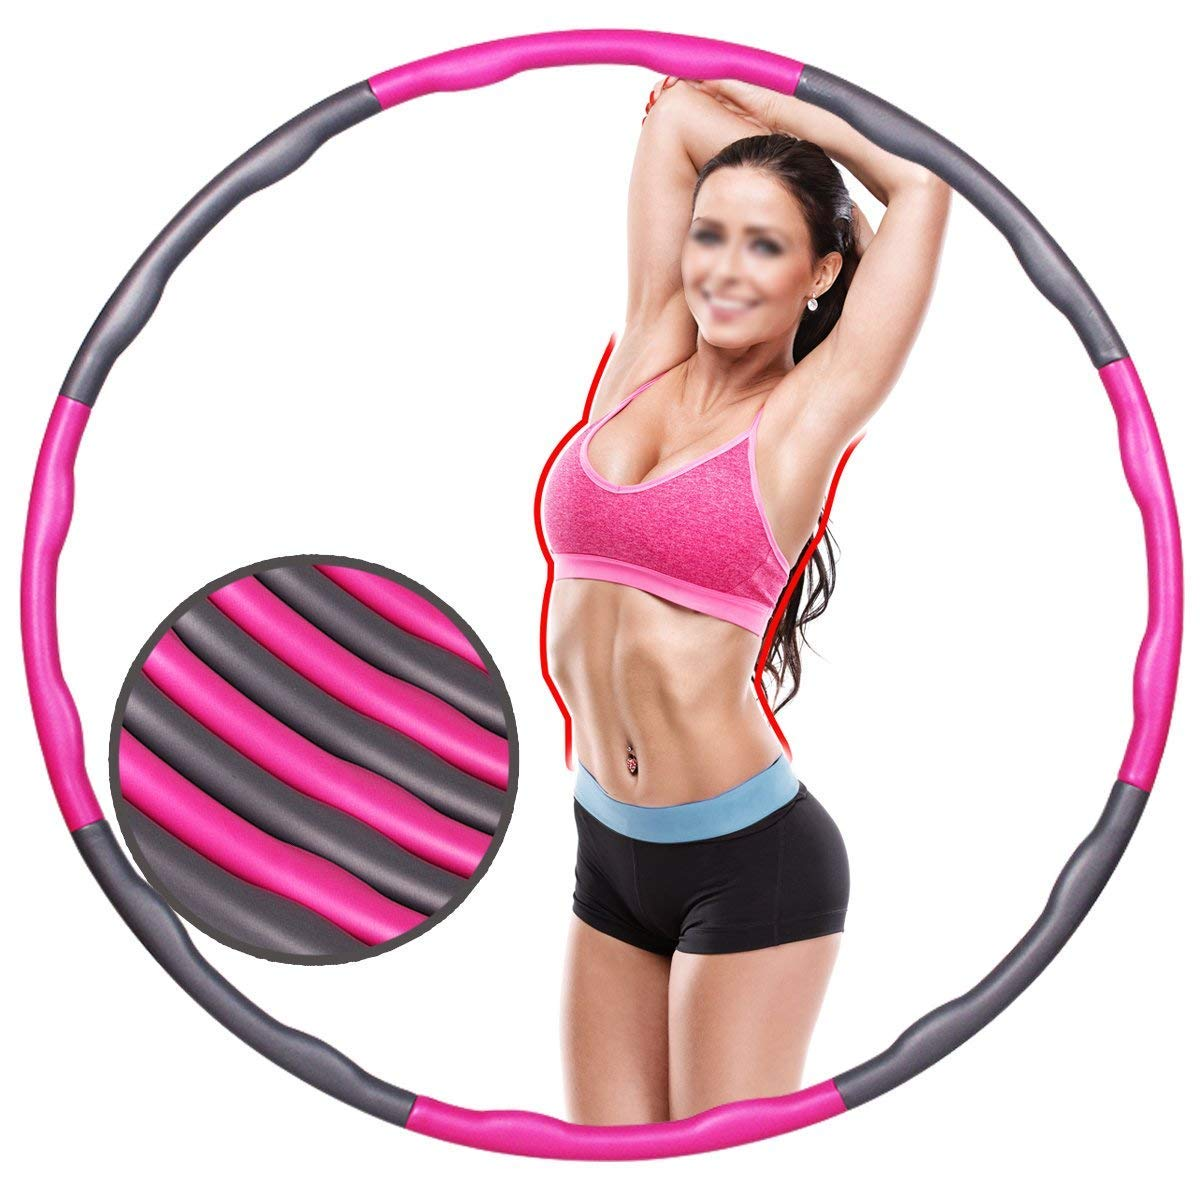 Communication on this topic: Workout Video: Hula Hoop Exercise IV, workout-video-hula-hoop-exercise-iv/